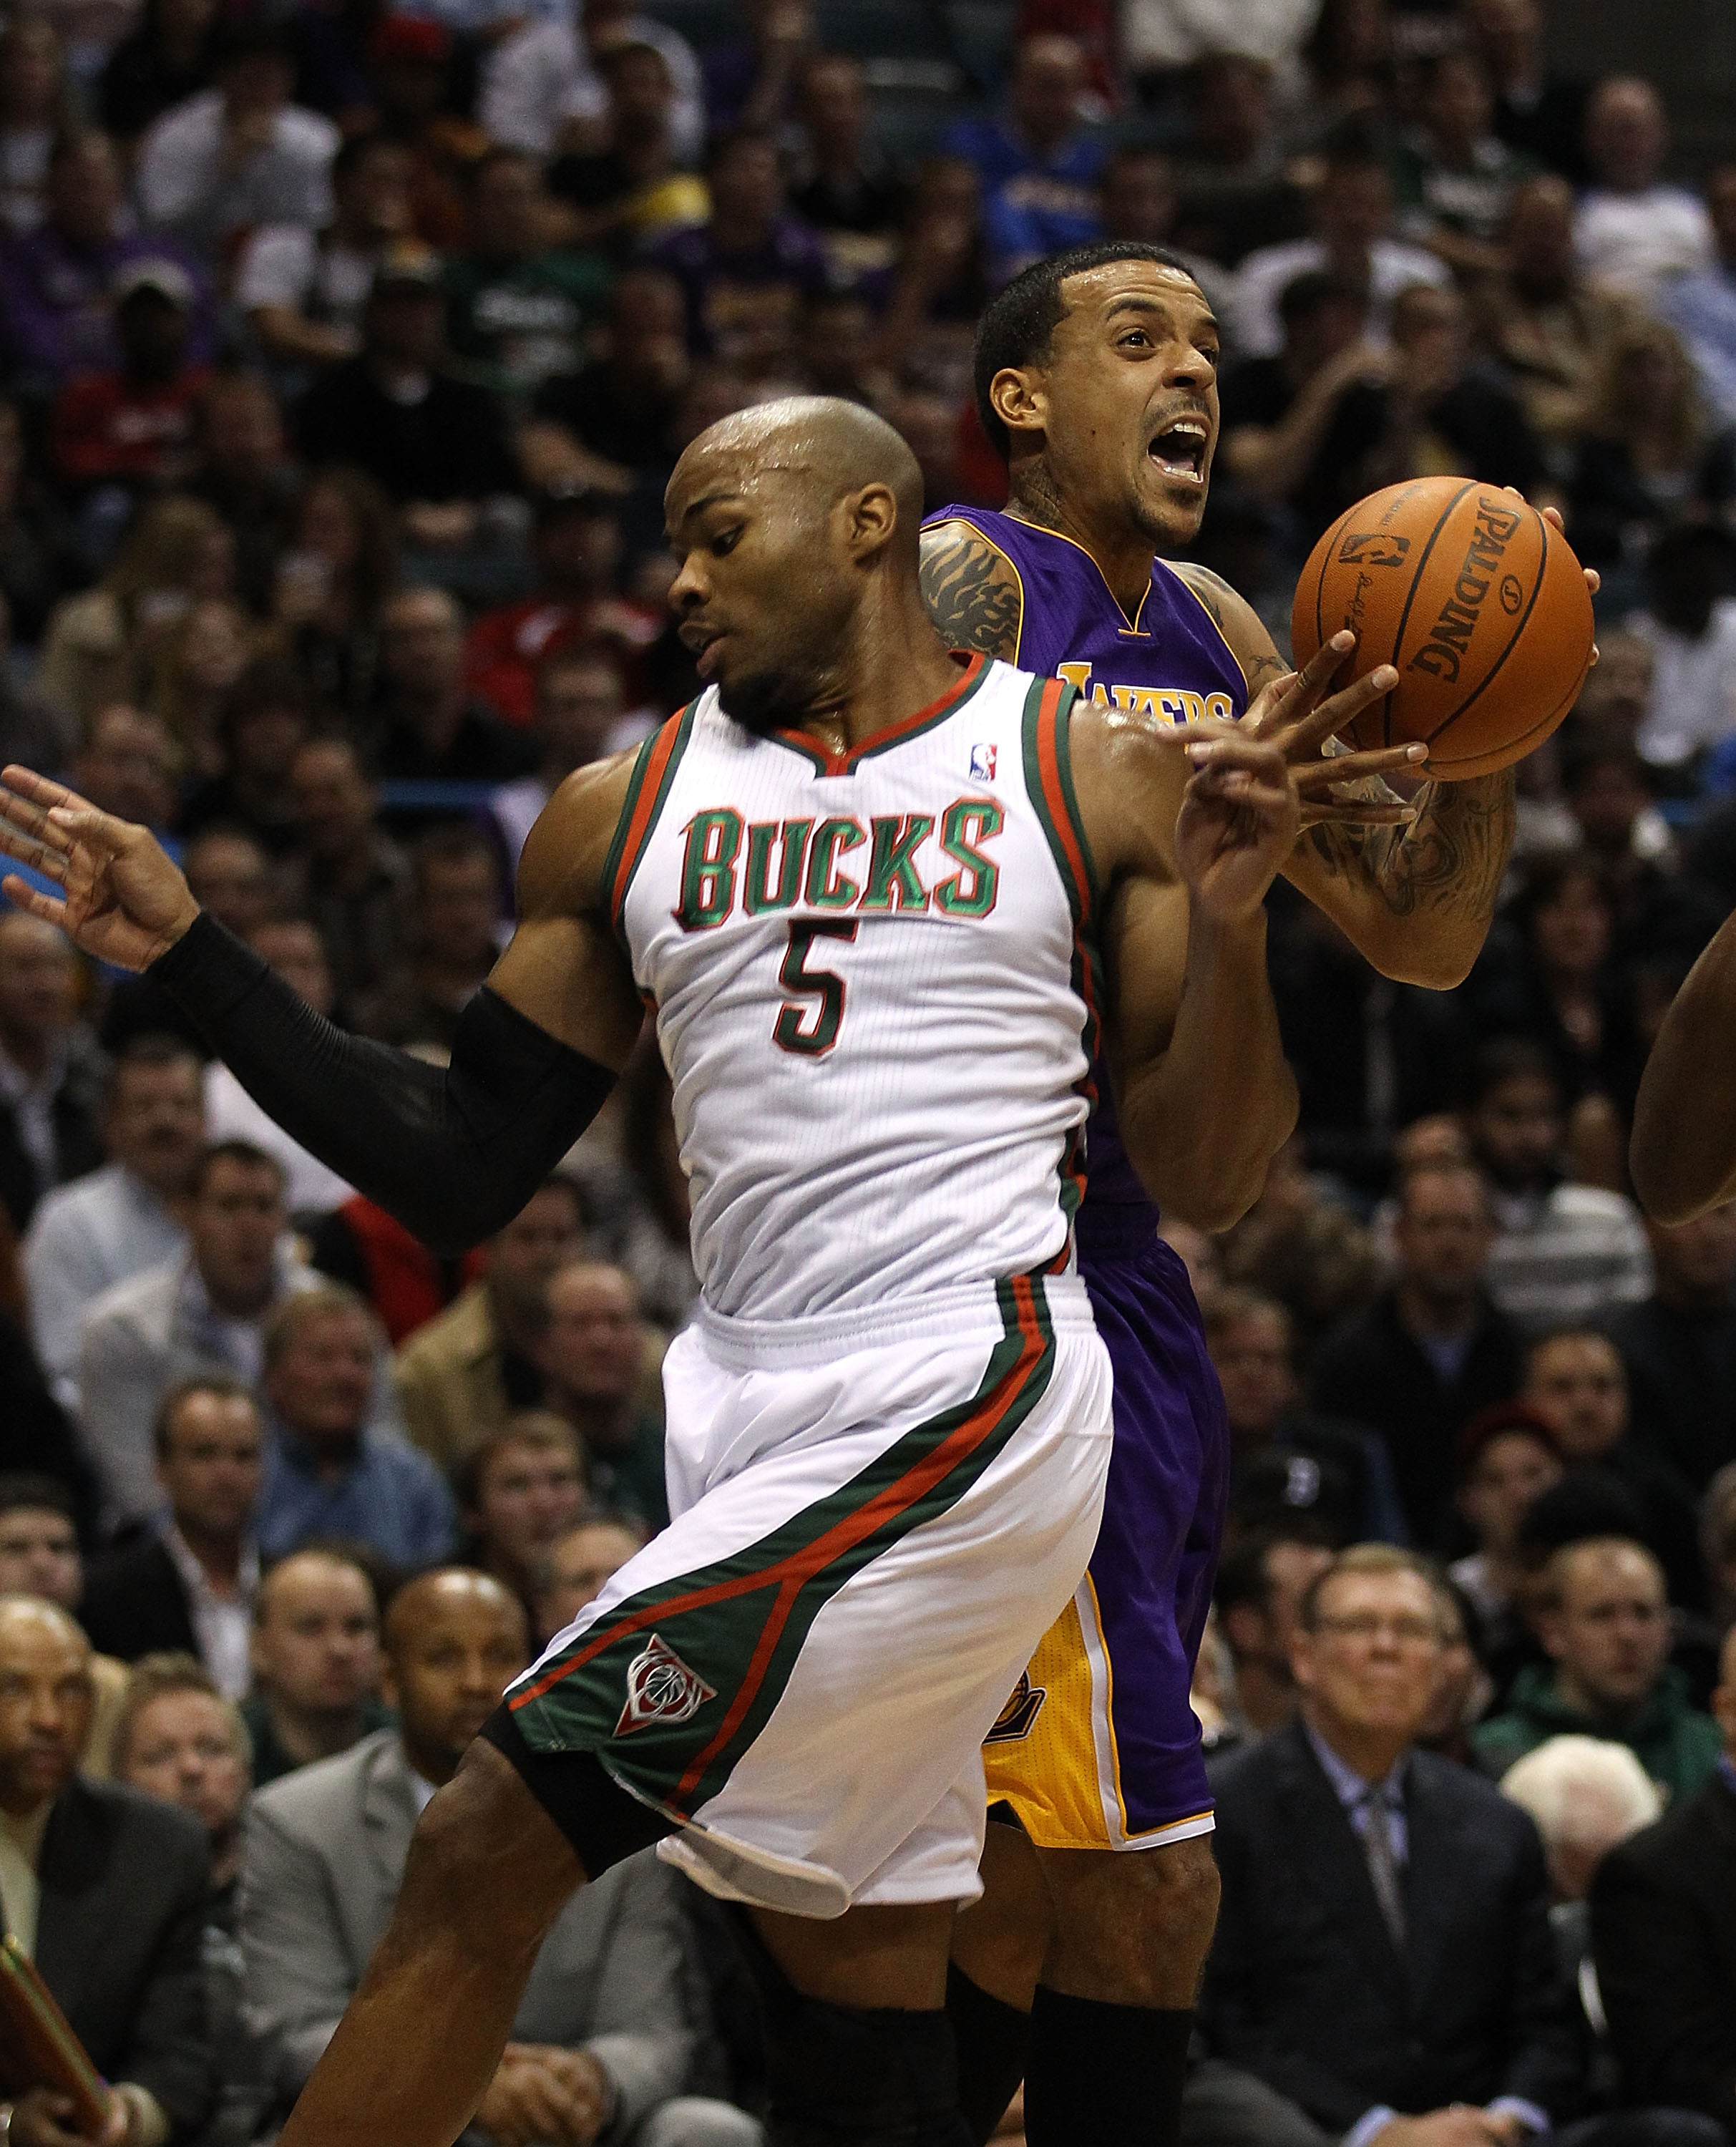 MILWAUKEE - NOVEMBER 16: Corey Maggette #5 of the Milwaukee Bucks fouls Matt Barnes #9 of the Los Angeles Lakers at the Bradley Center on November 16, 2010 in Milwaukee, Wisconsin. NOTE TO USER: User expressly acknowledges and agrees that, by downloading